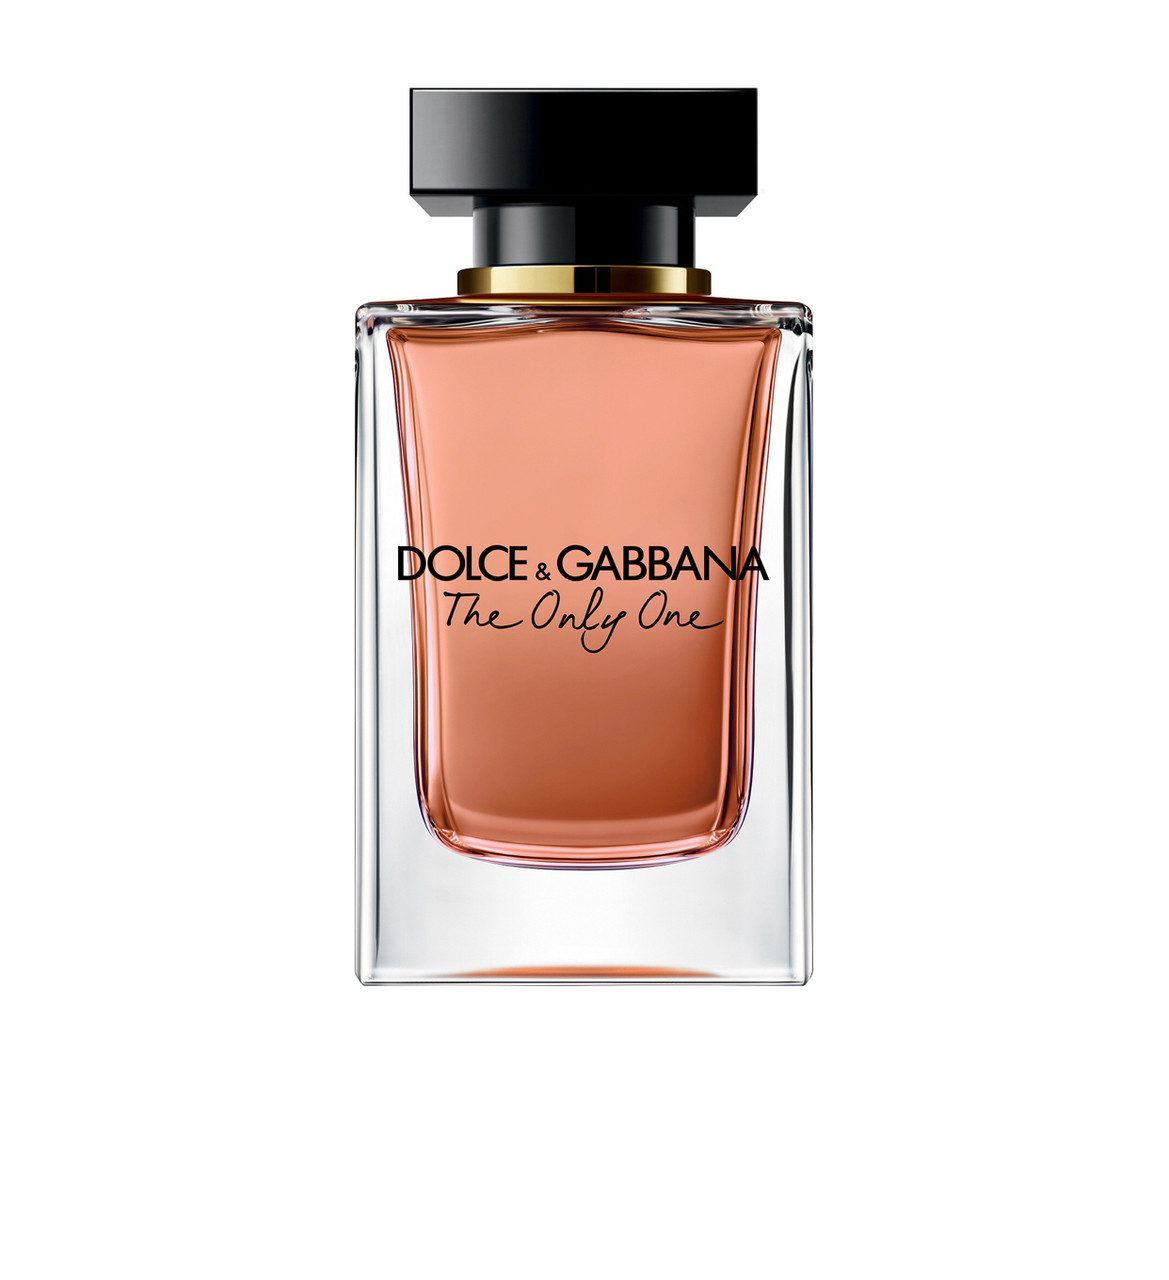 Dolce & Gabbana The only one 30ml